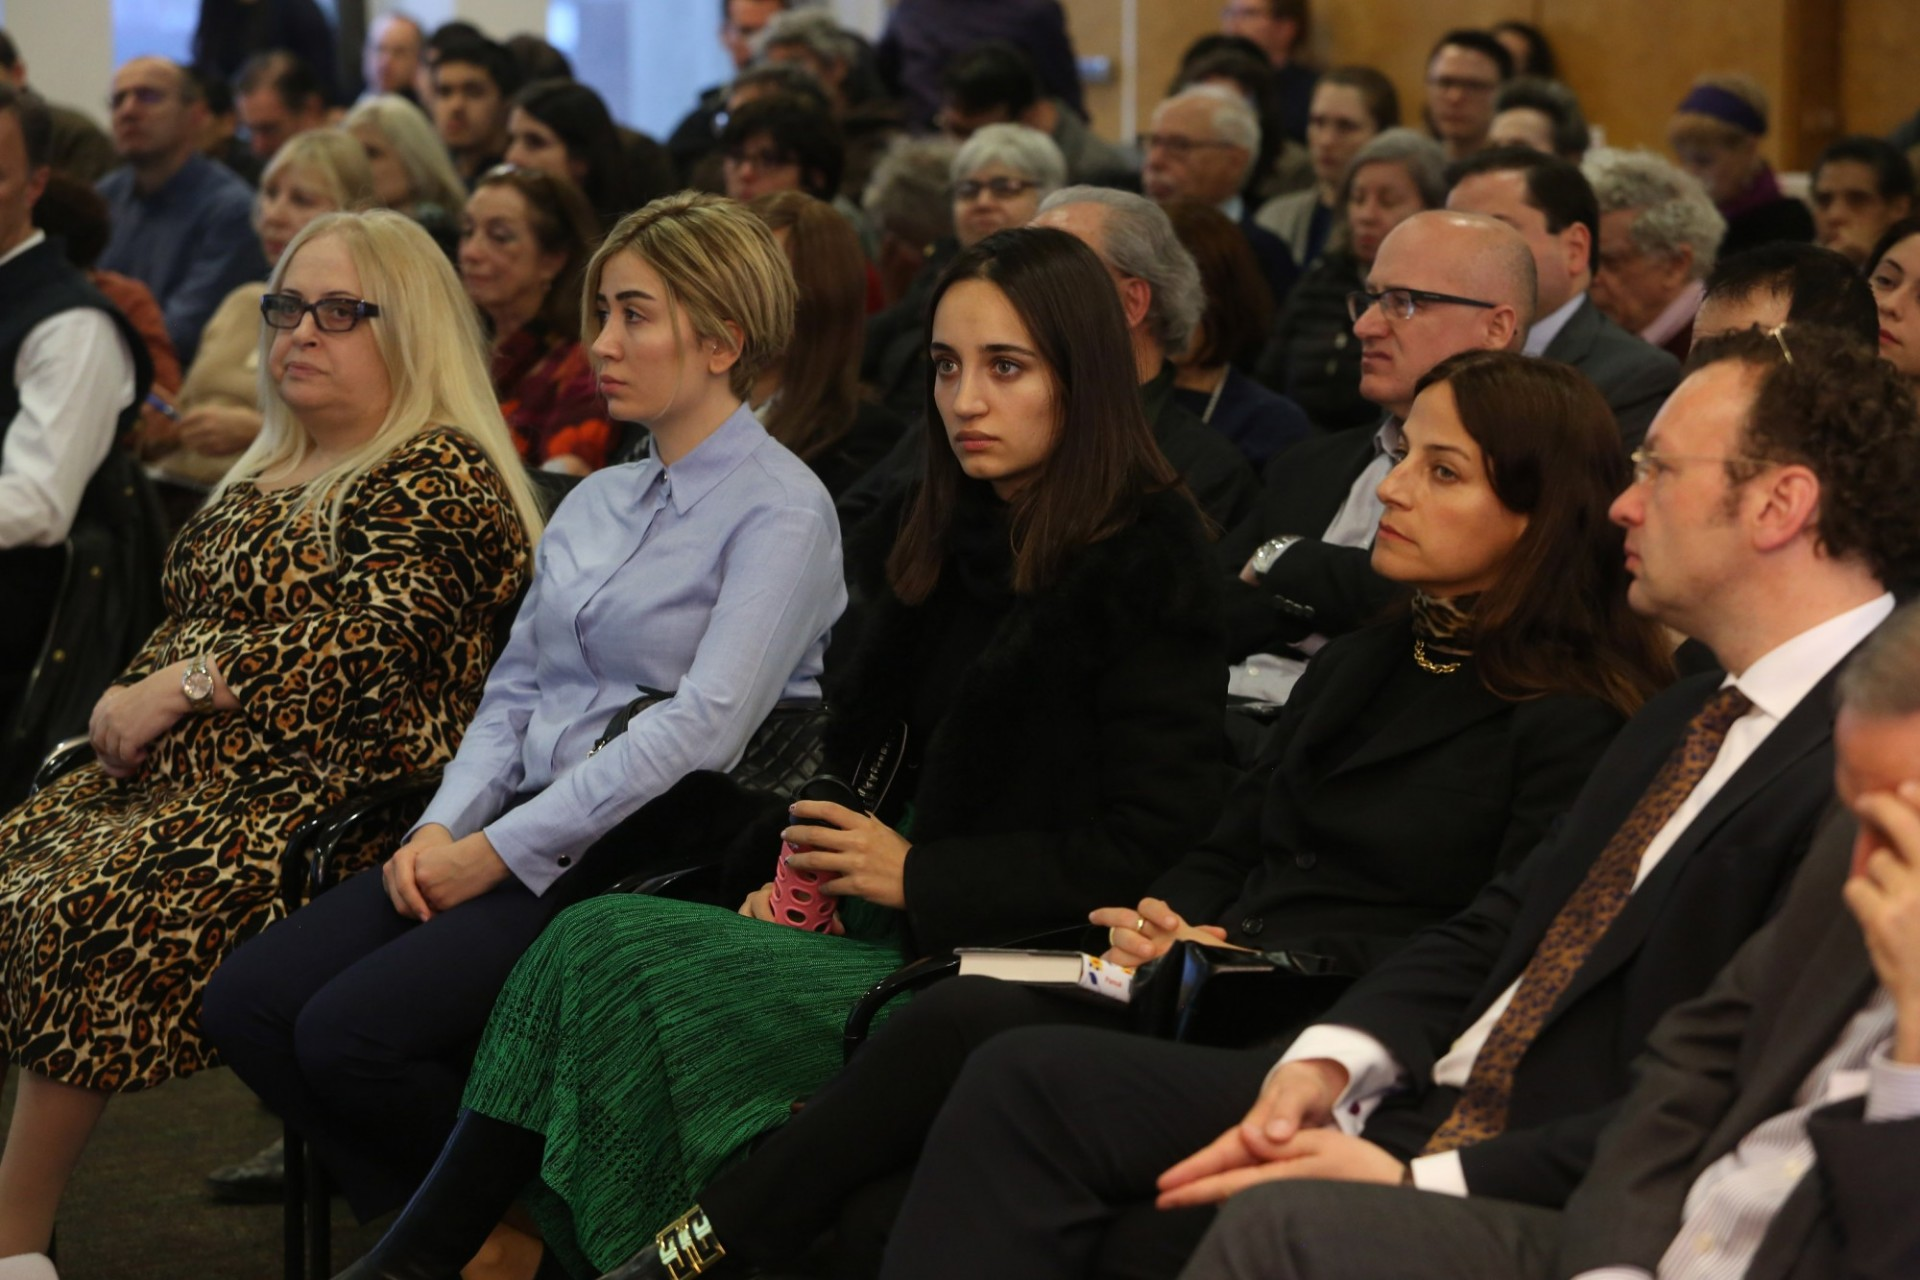 Members of the audience at the Inaugural Sakip Sabanci Lecture at Columbia University